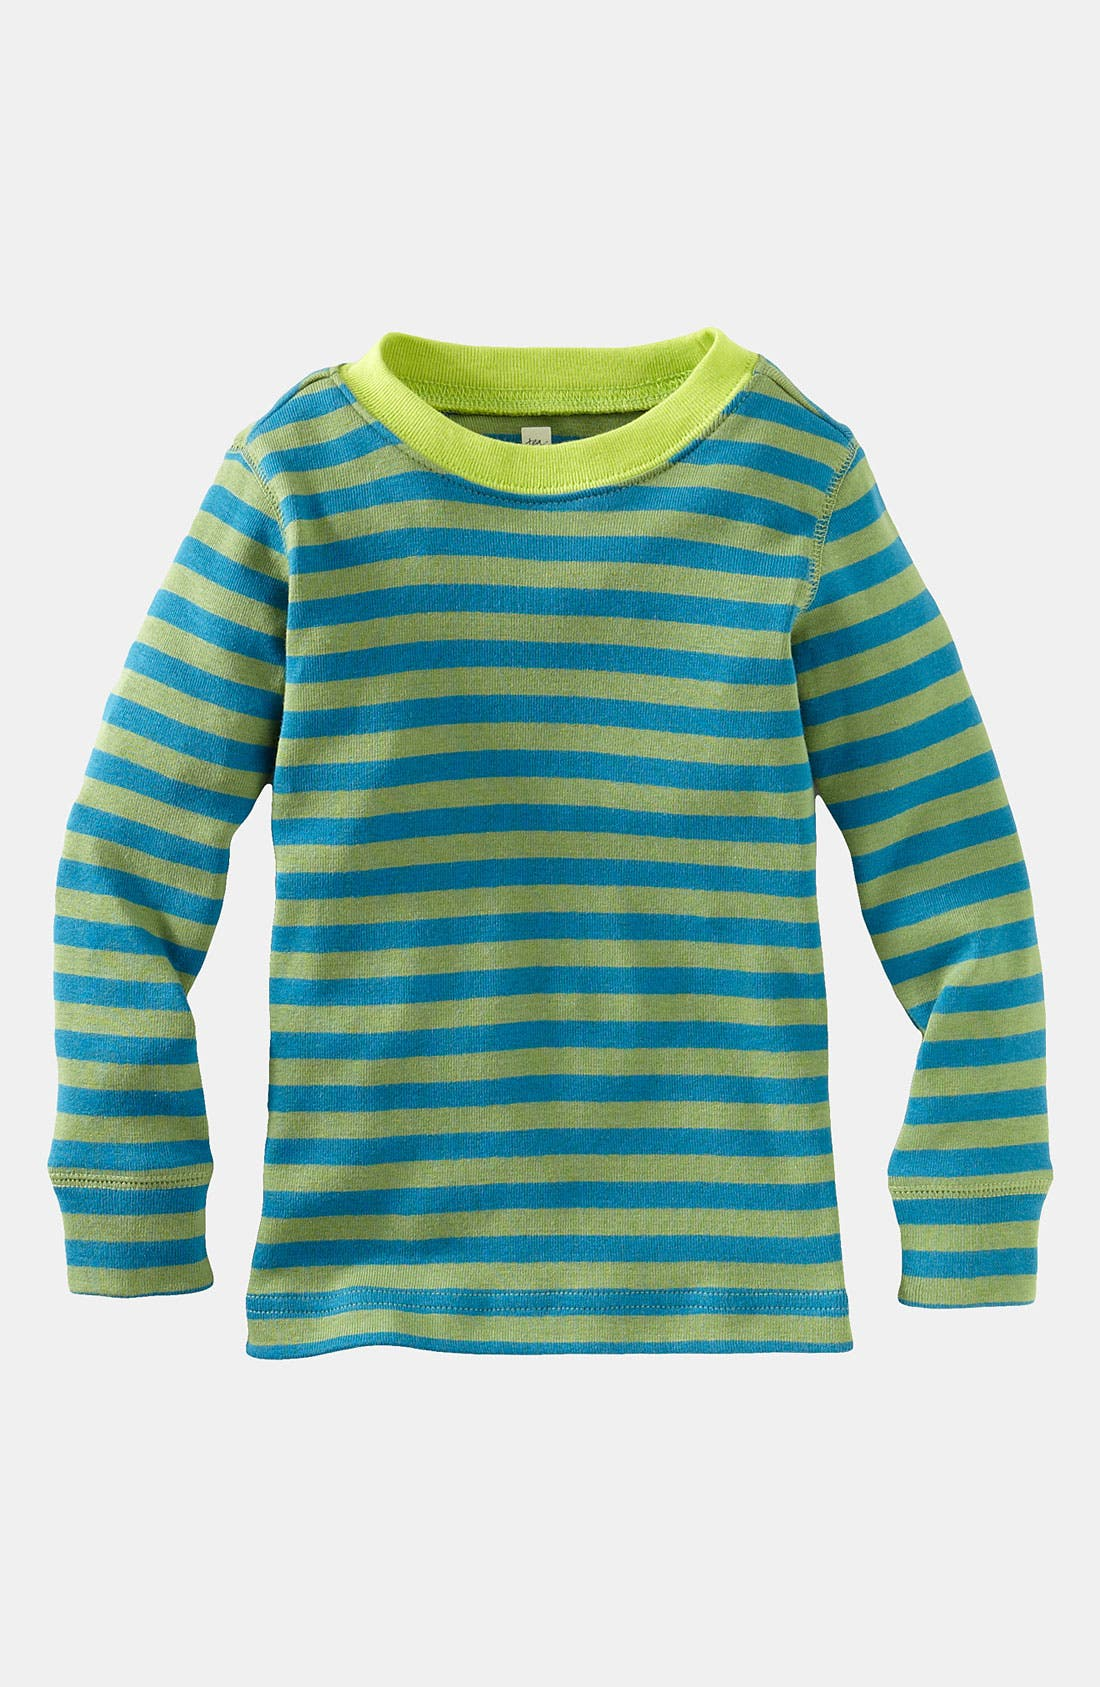 Alternate Image 1 Selected - Tea Collection Stripe T-Shirt (Toddler)